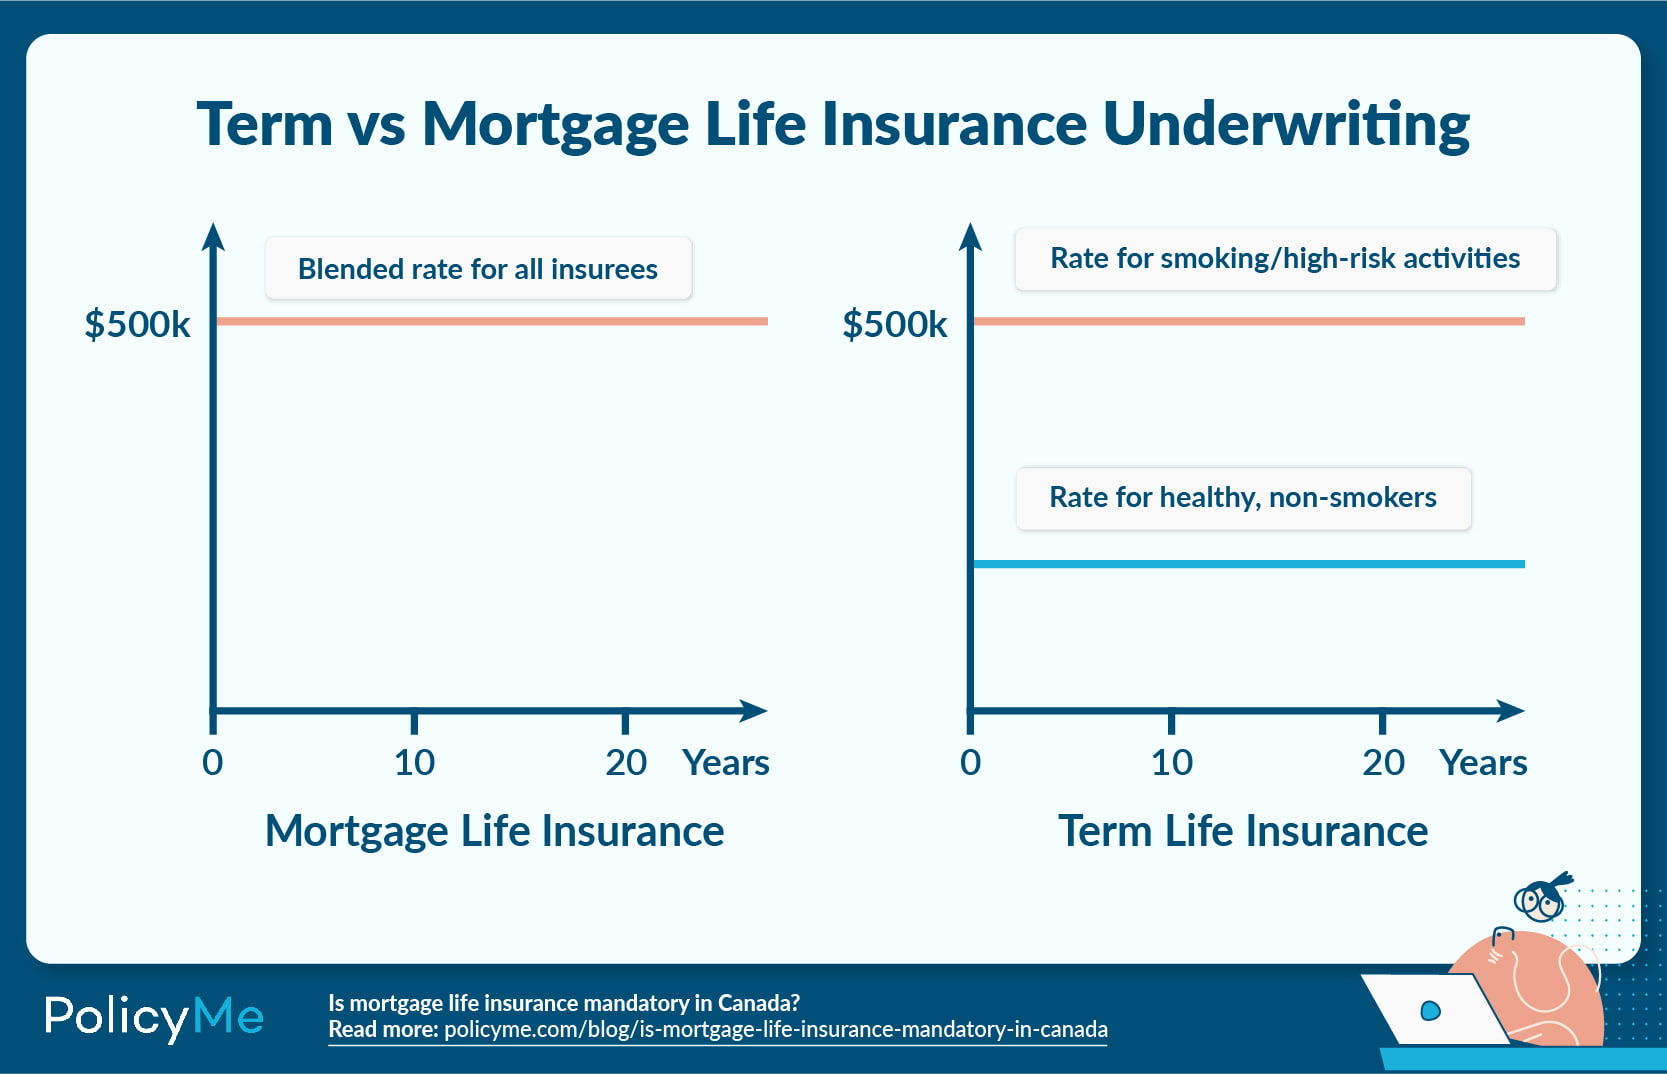 Chart outlining Term vs. Mortgage Life Insurance Underwriting for smokers vs. on smokers